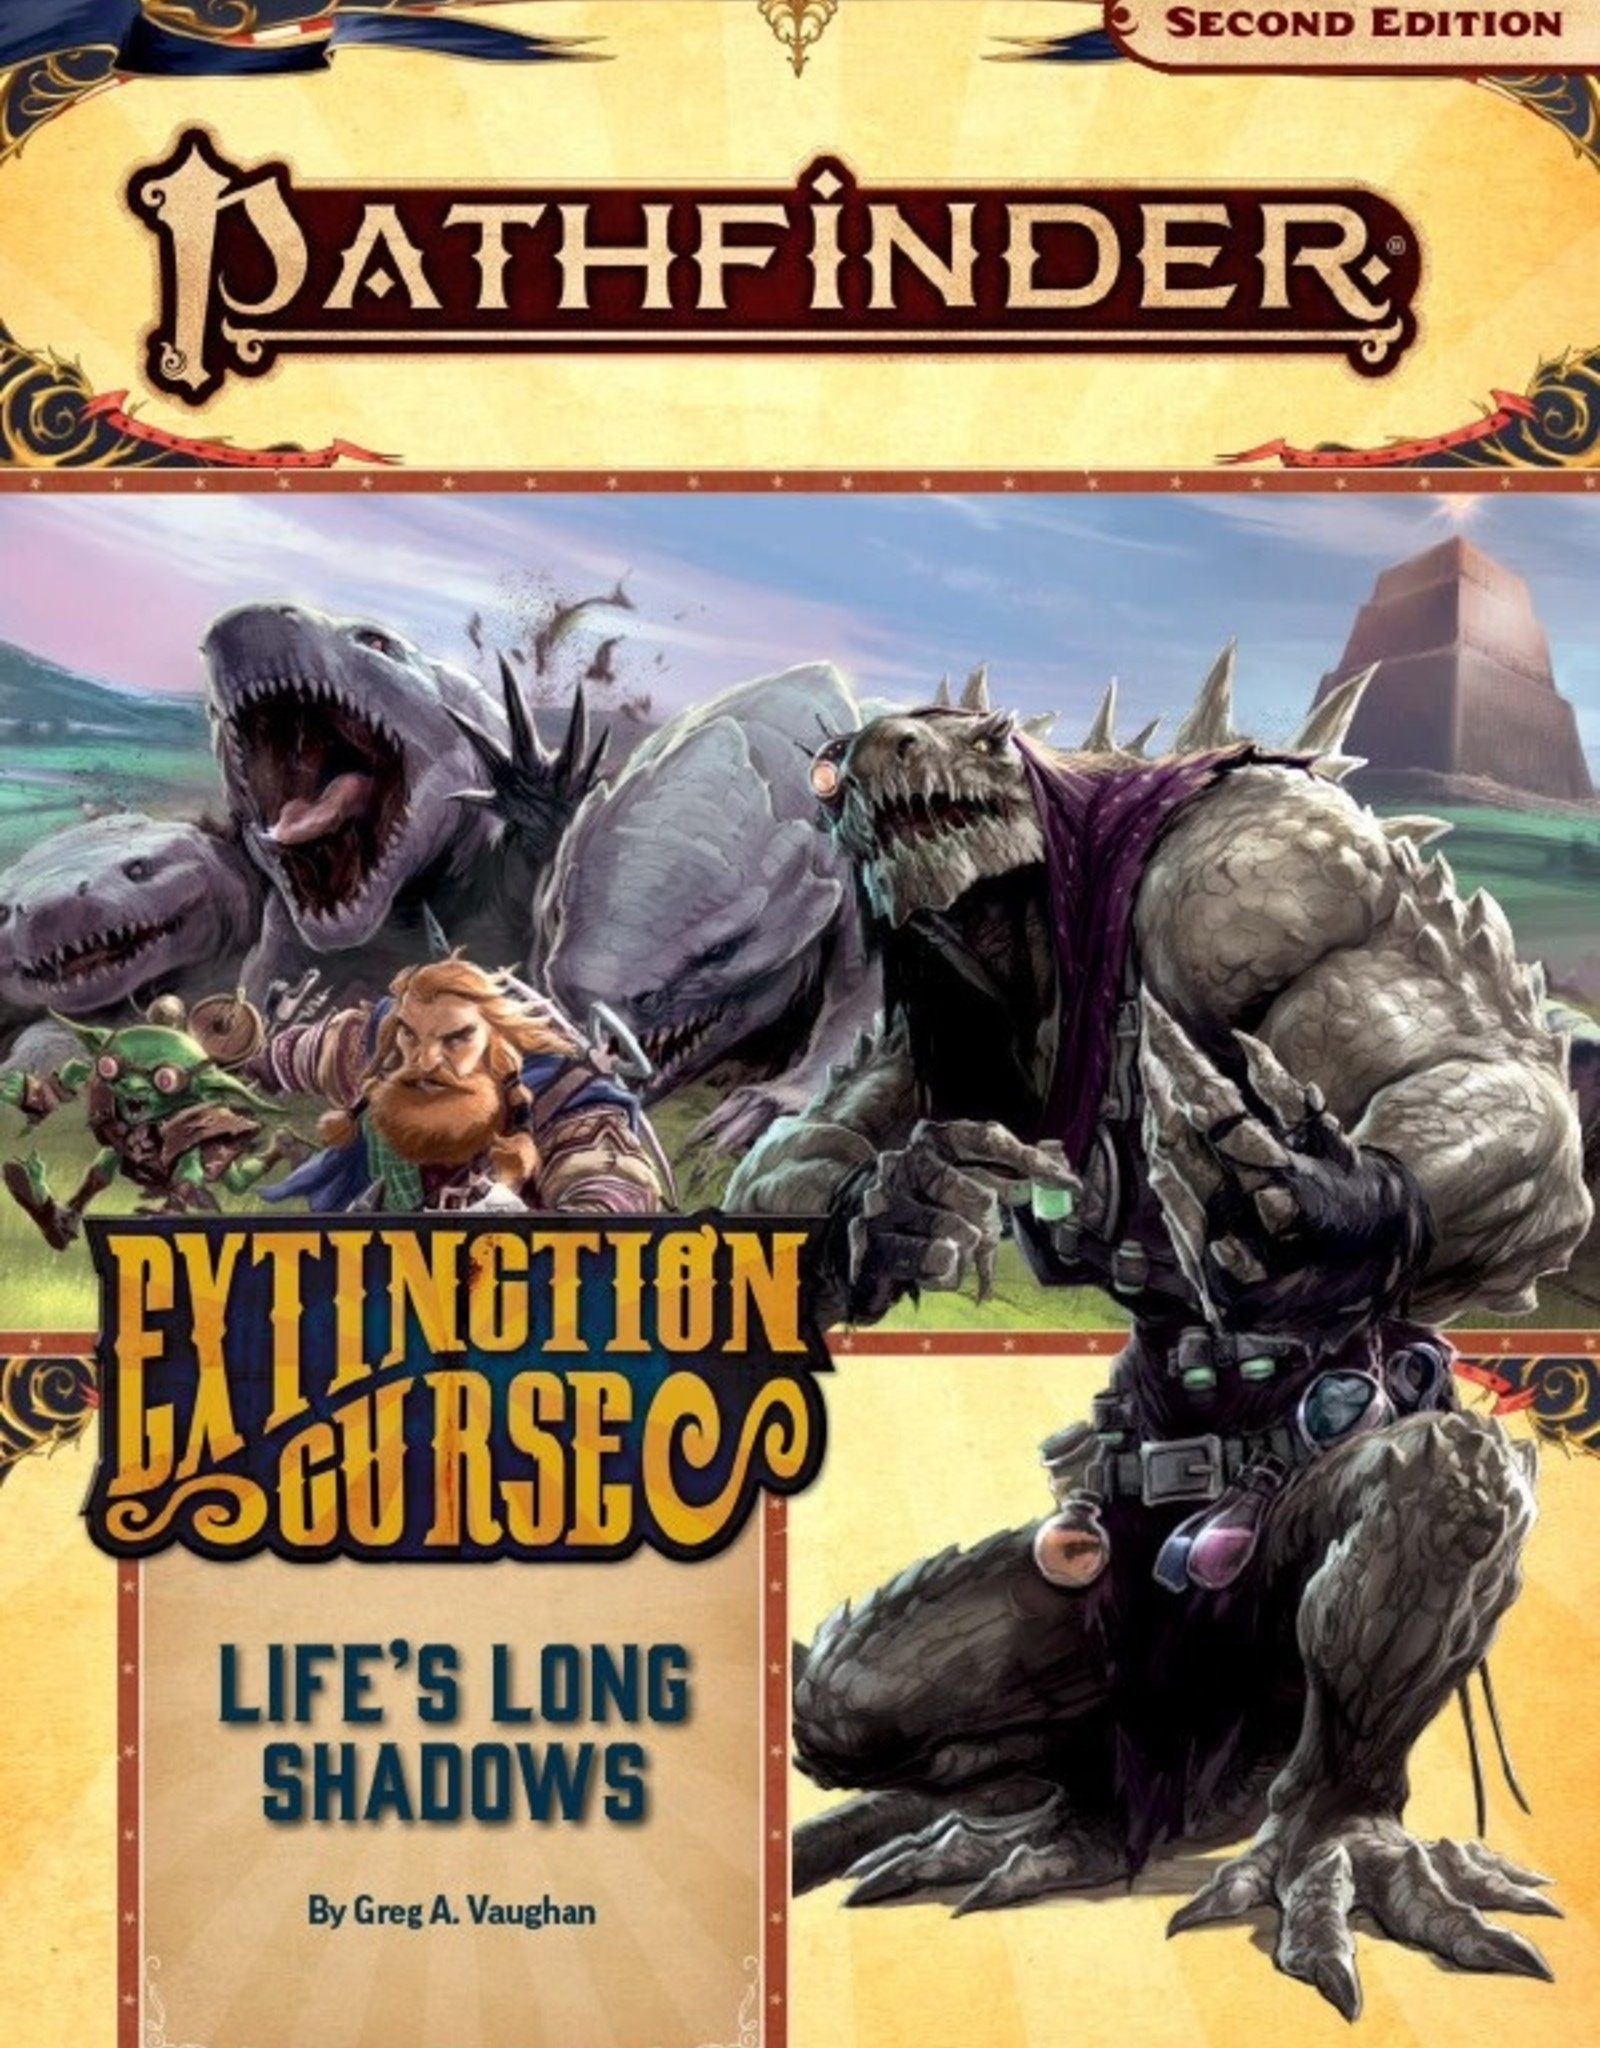 Paizo Publishing Pathfinder 2e Extinction Curse Pt 3 Life's Long Shadows